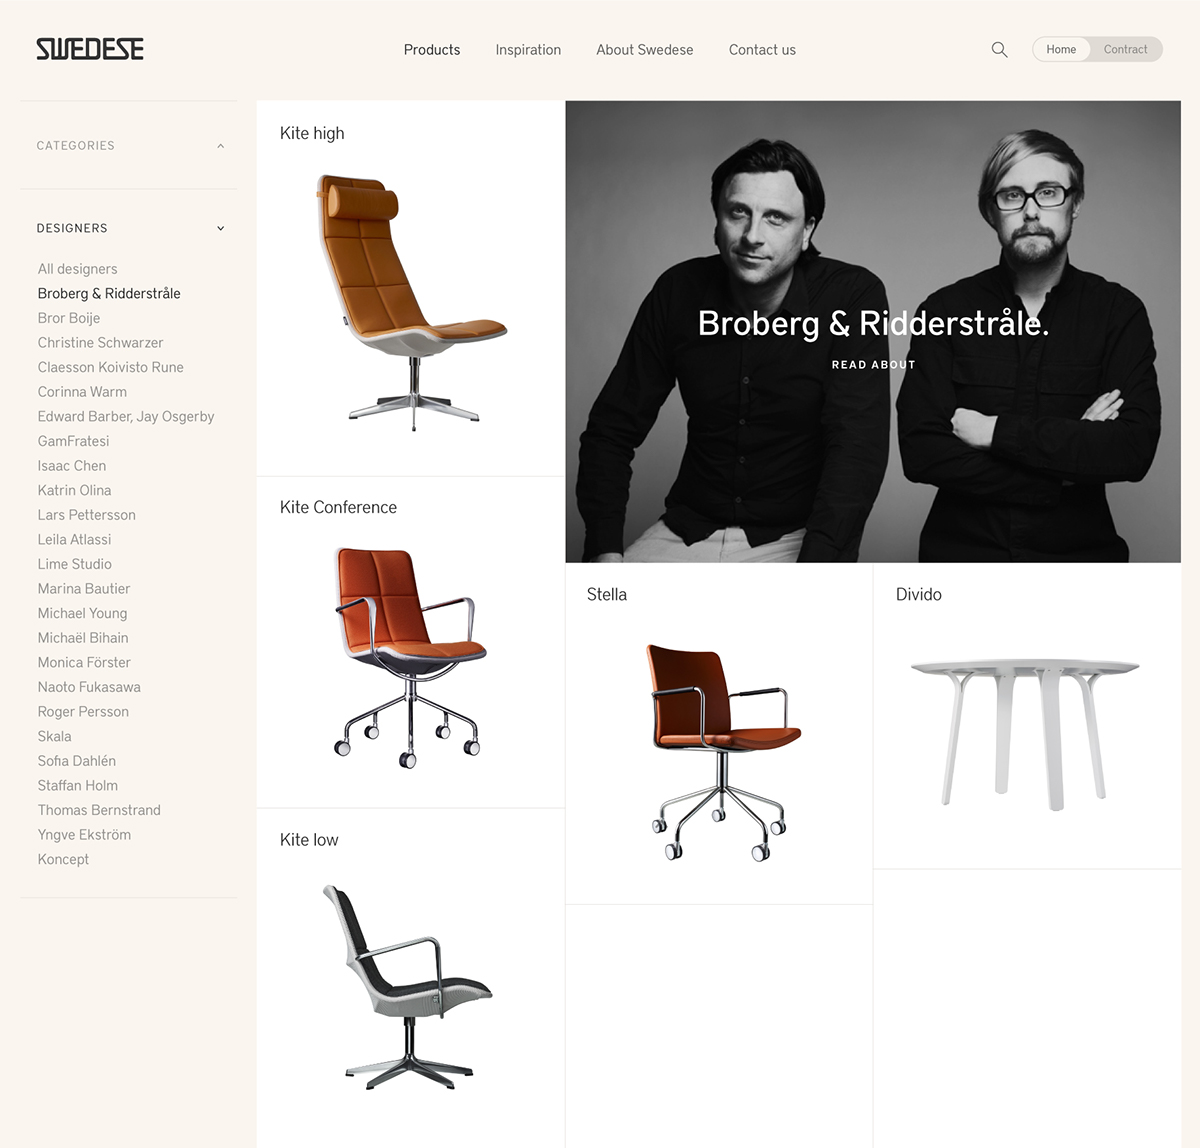 swedese furniture